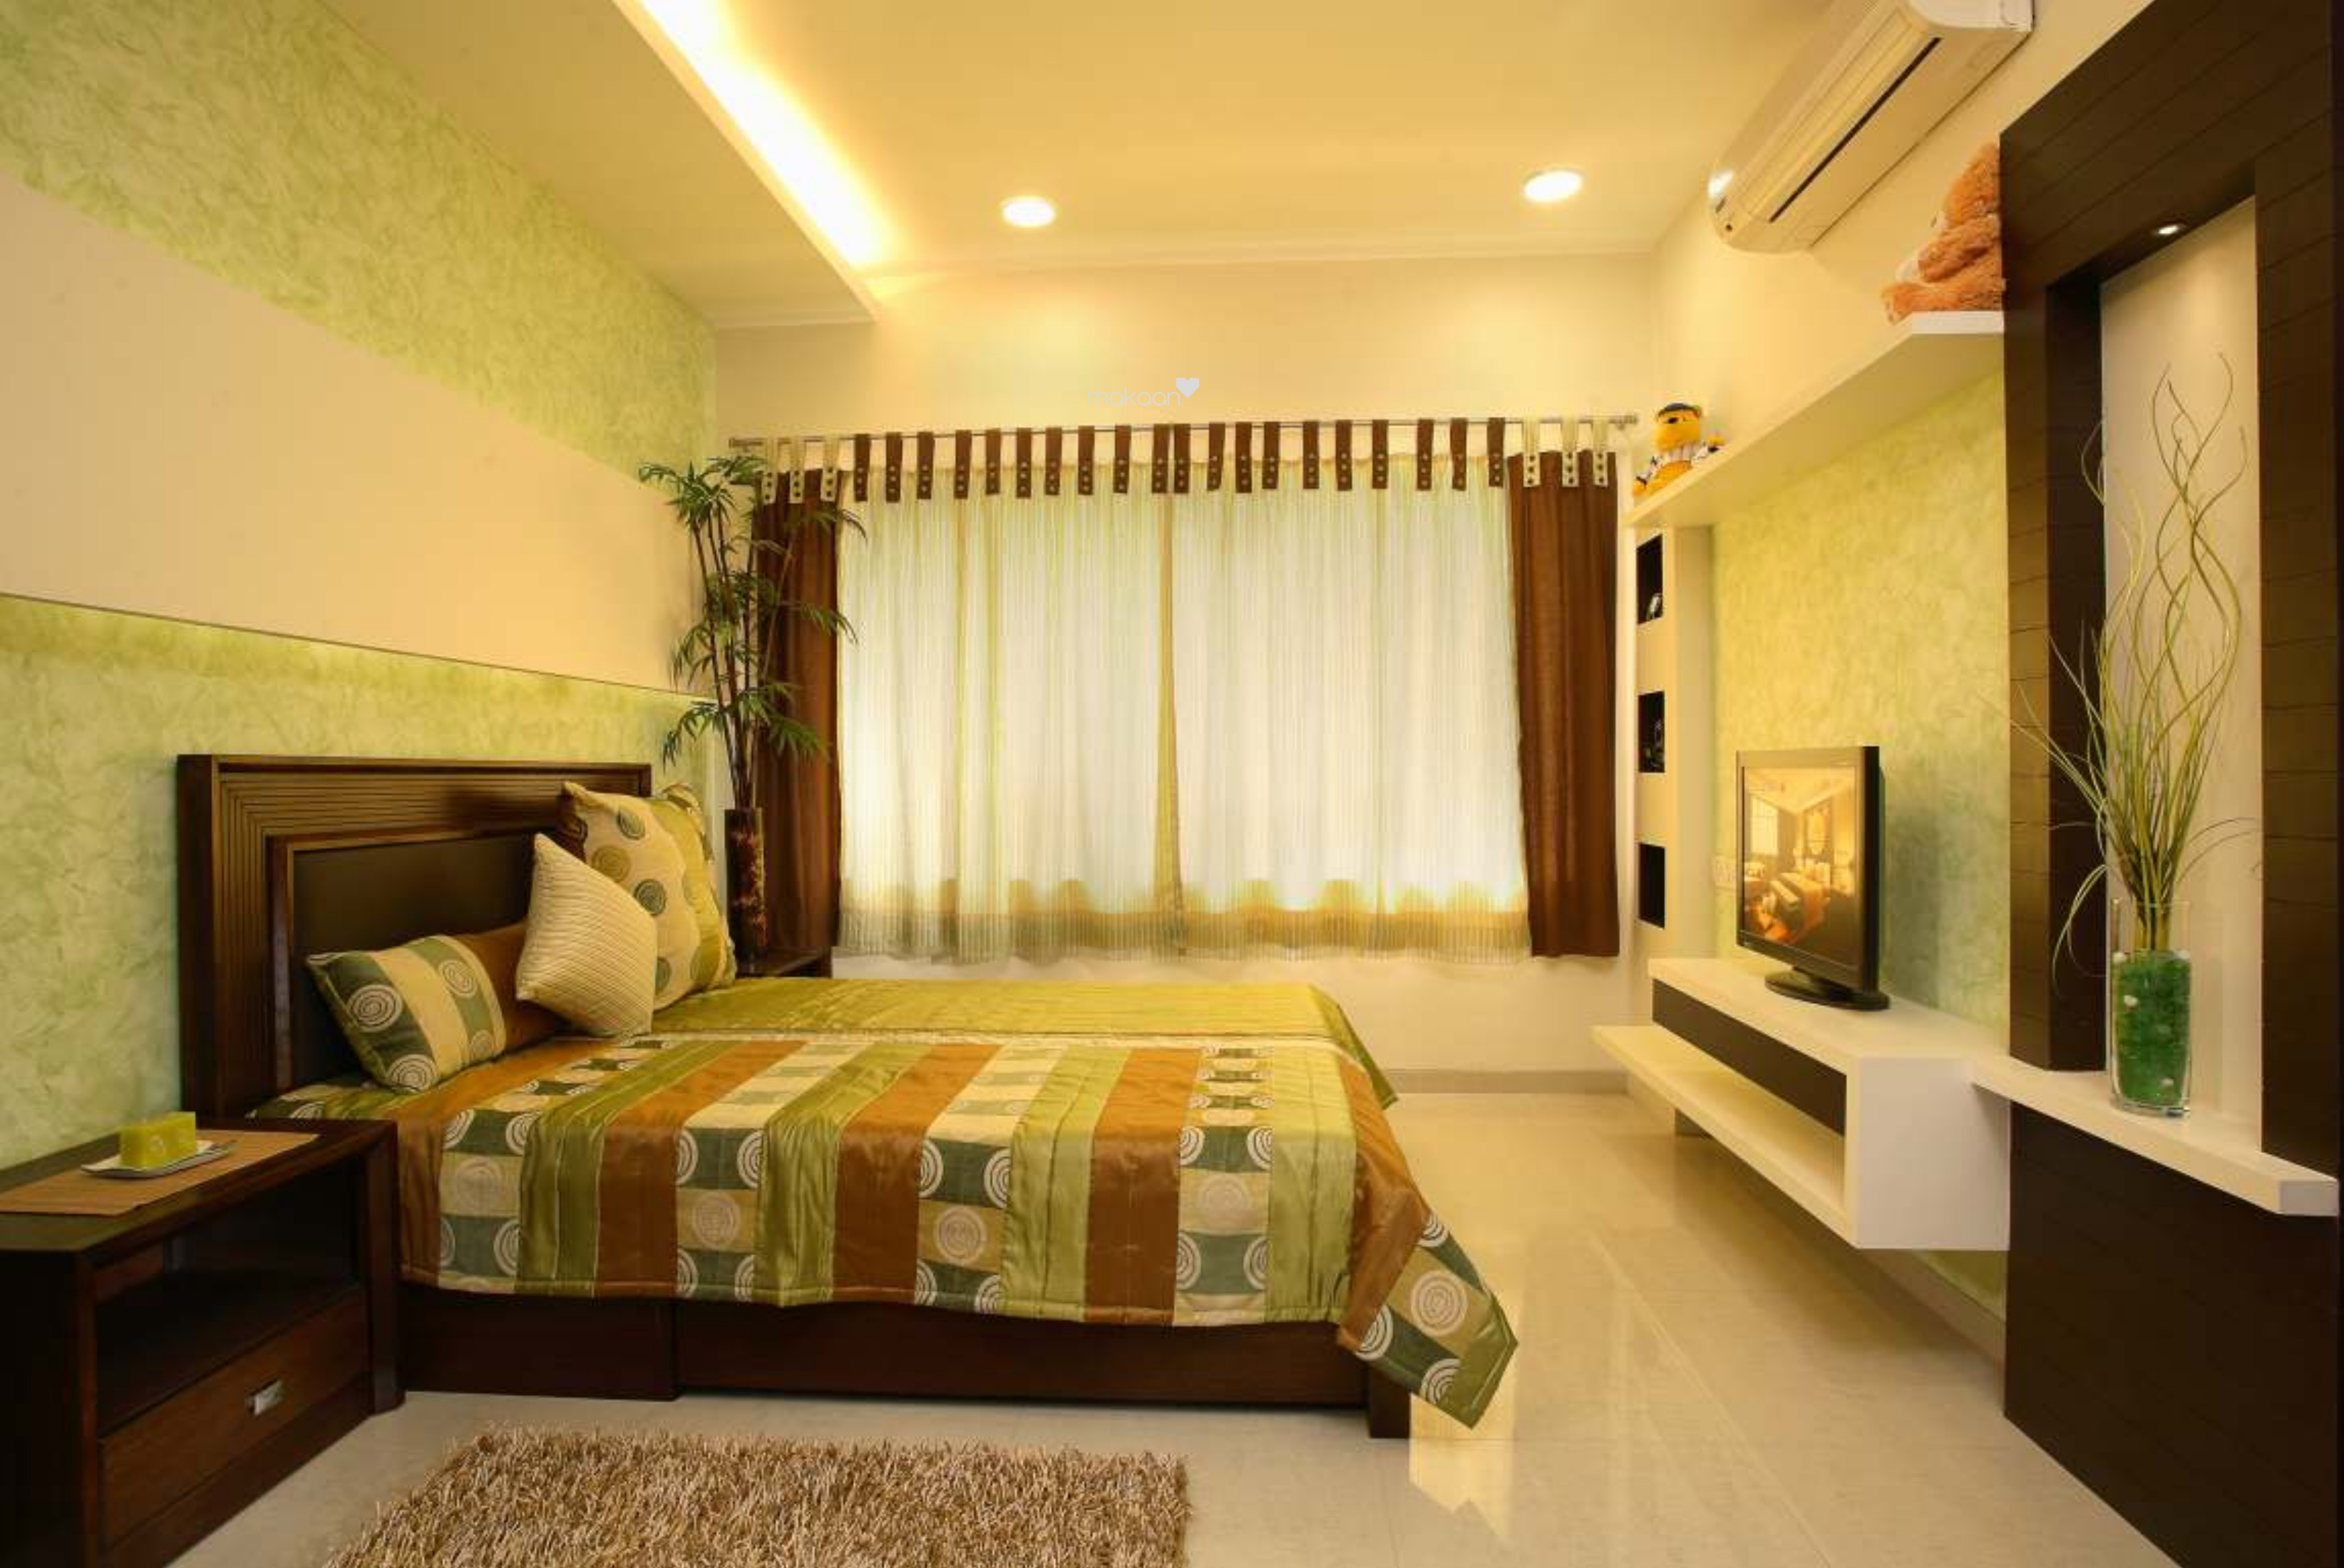 935 sq ft 2BHK 2BHK+2T (935 sq ft) Property By Proptiger In Umang Premiere, Wagholi